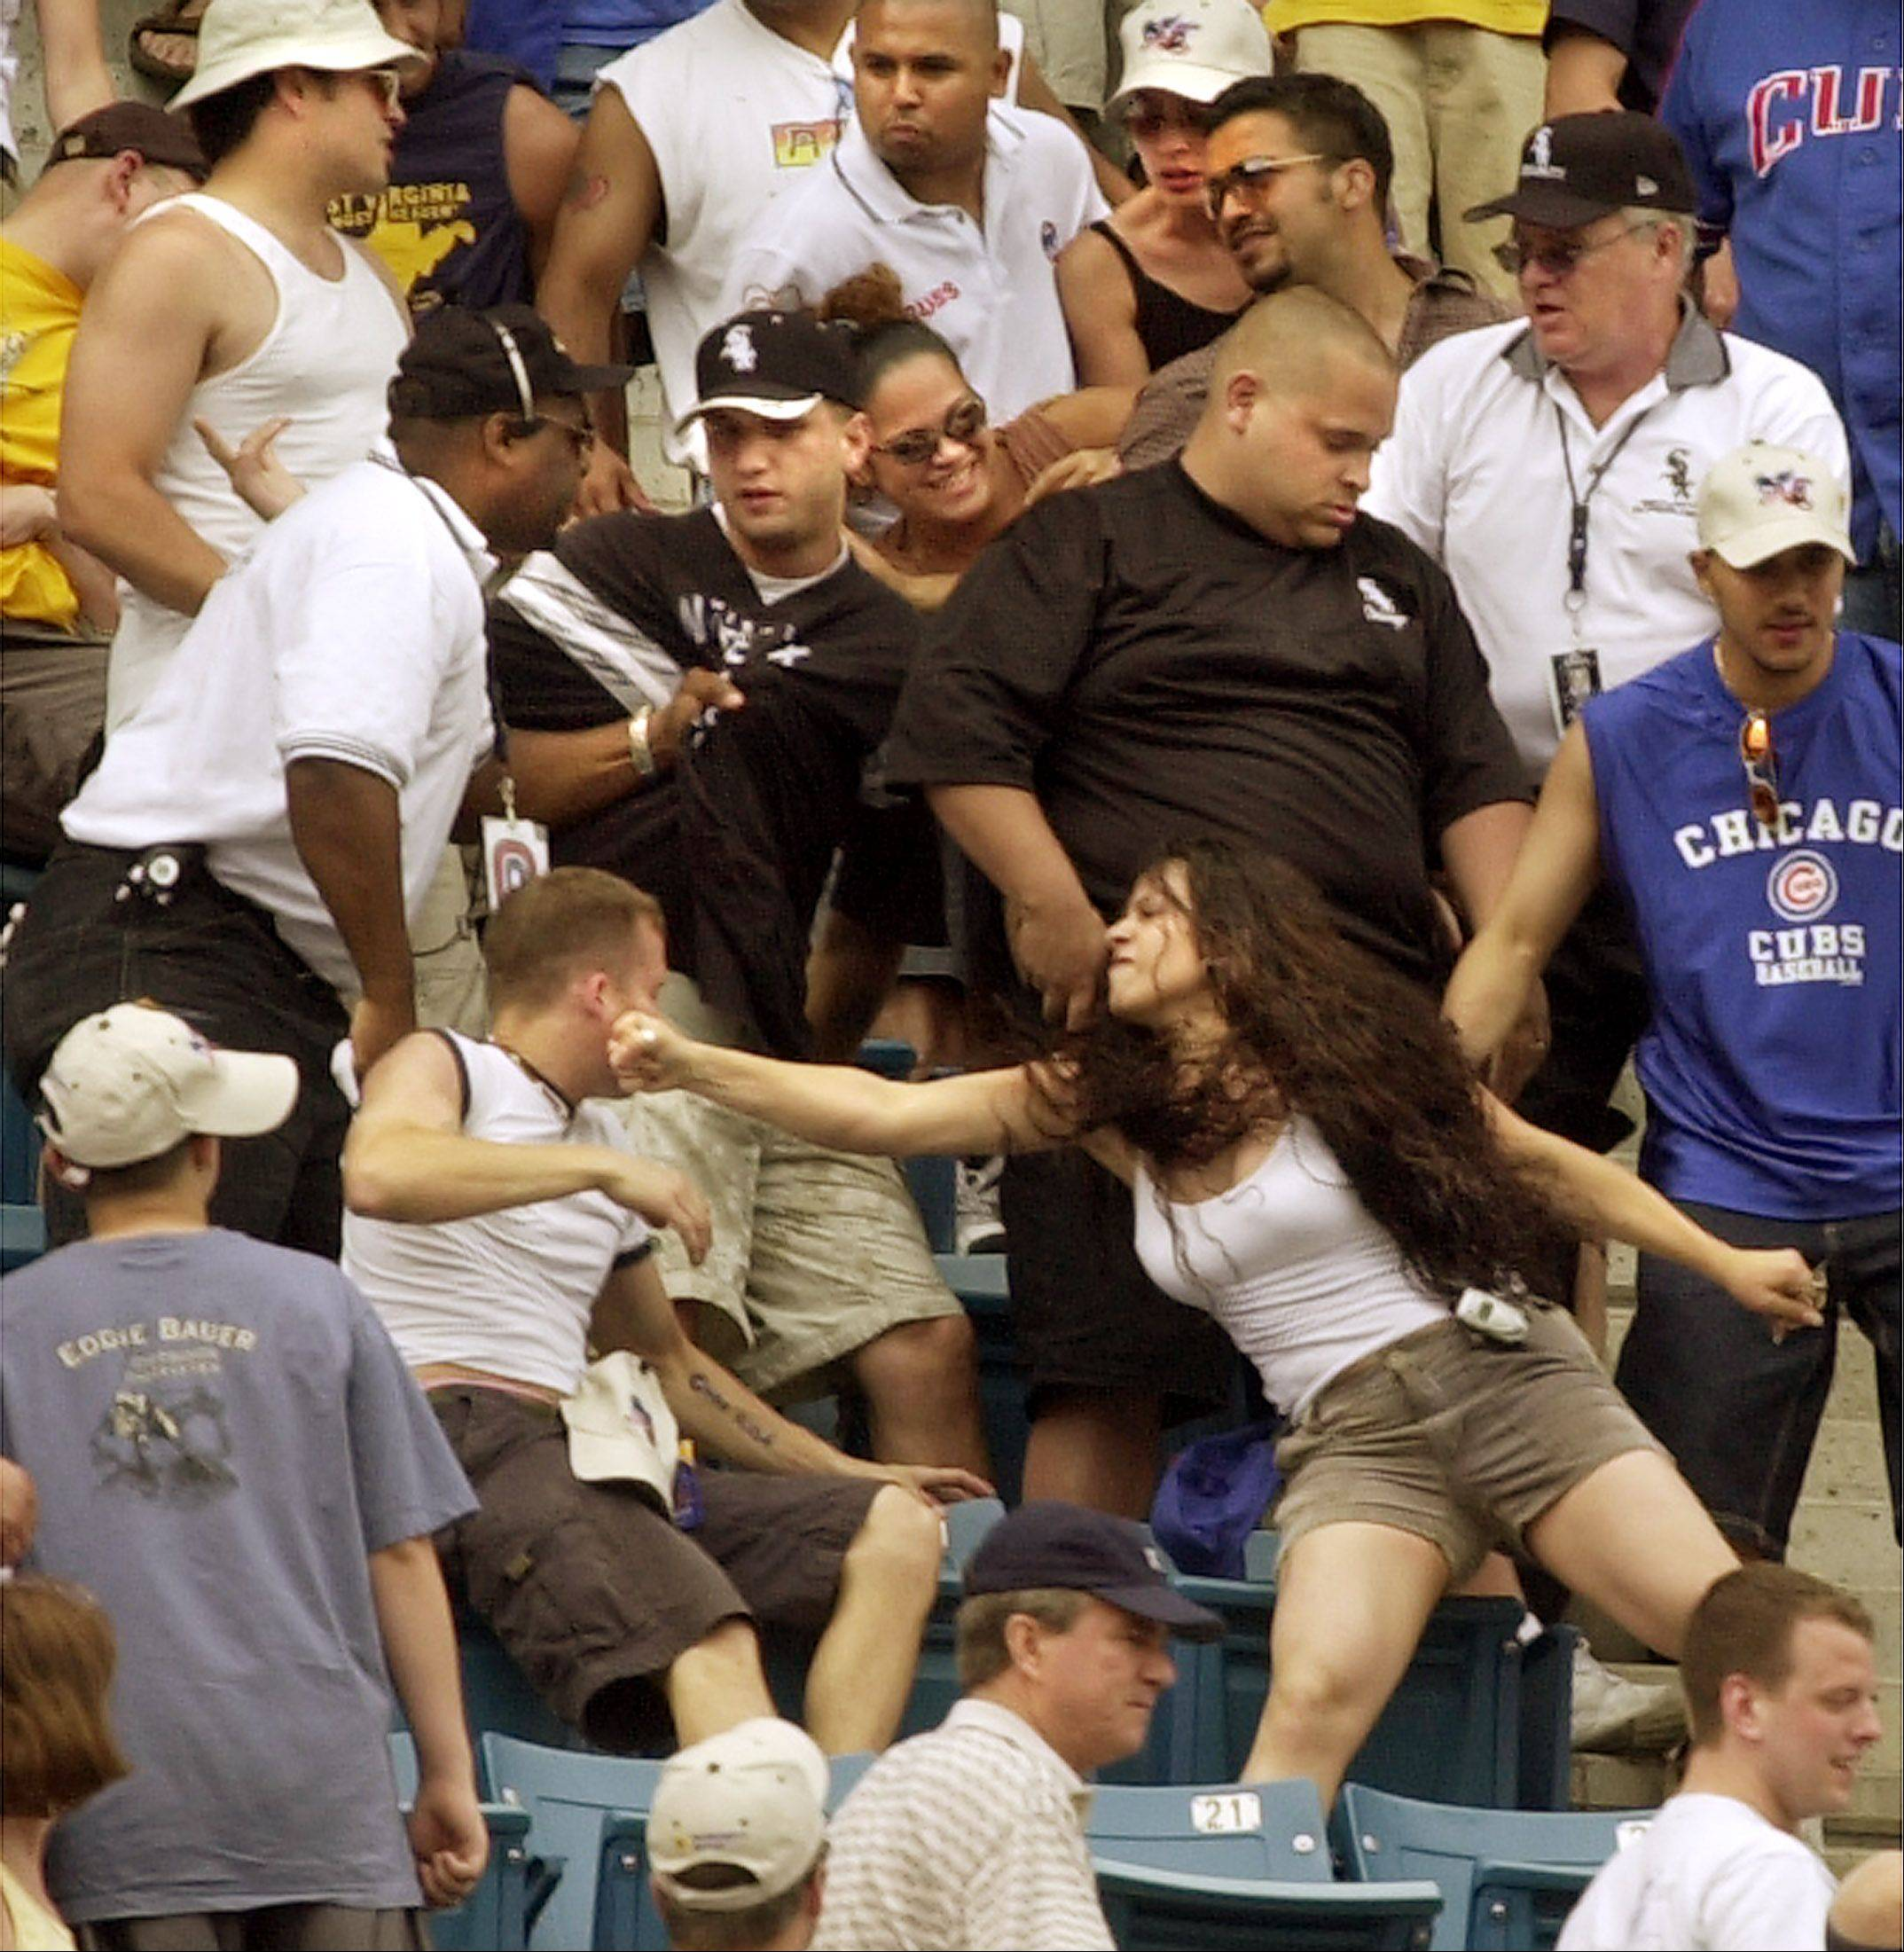 A US Cellular Field Security official has his hands full with two fighting men when a woman lunges to punch one of the men during the interleague game between the White Sox and the Cubs game. Several fights broke out during the game and several people were ejected.